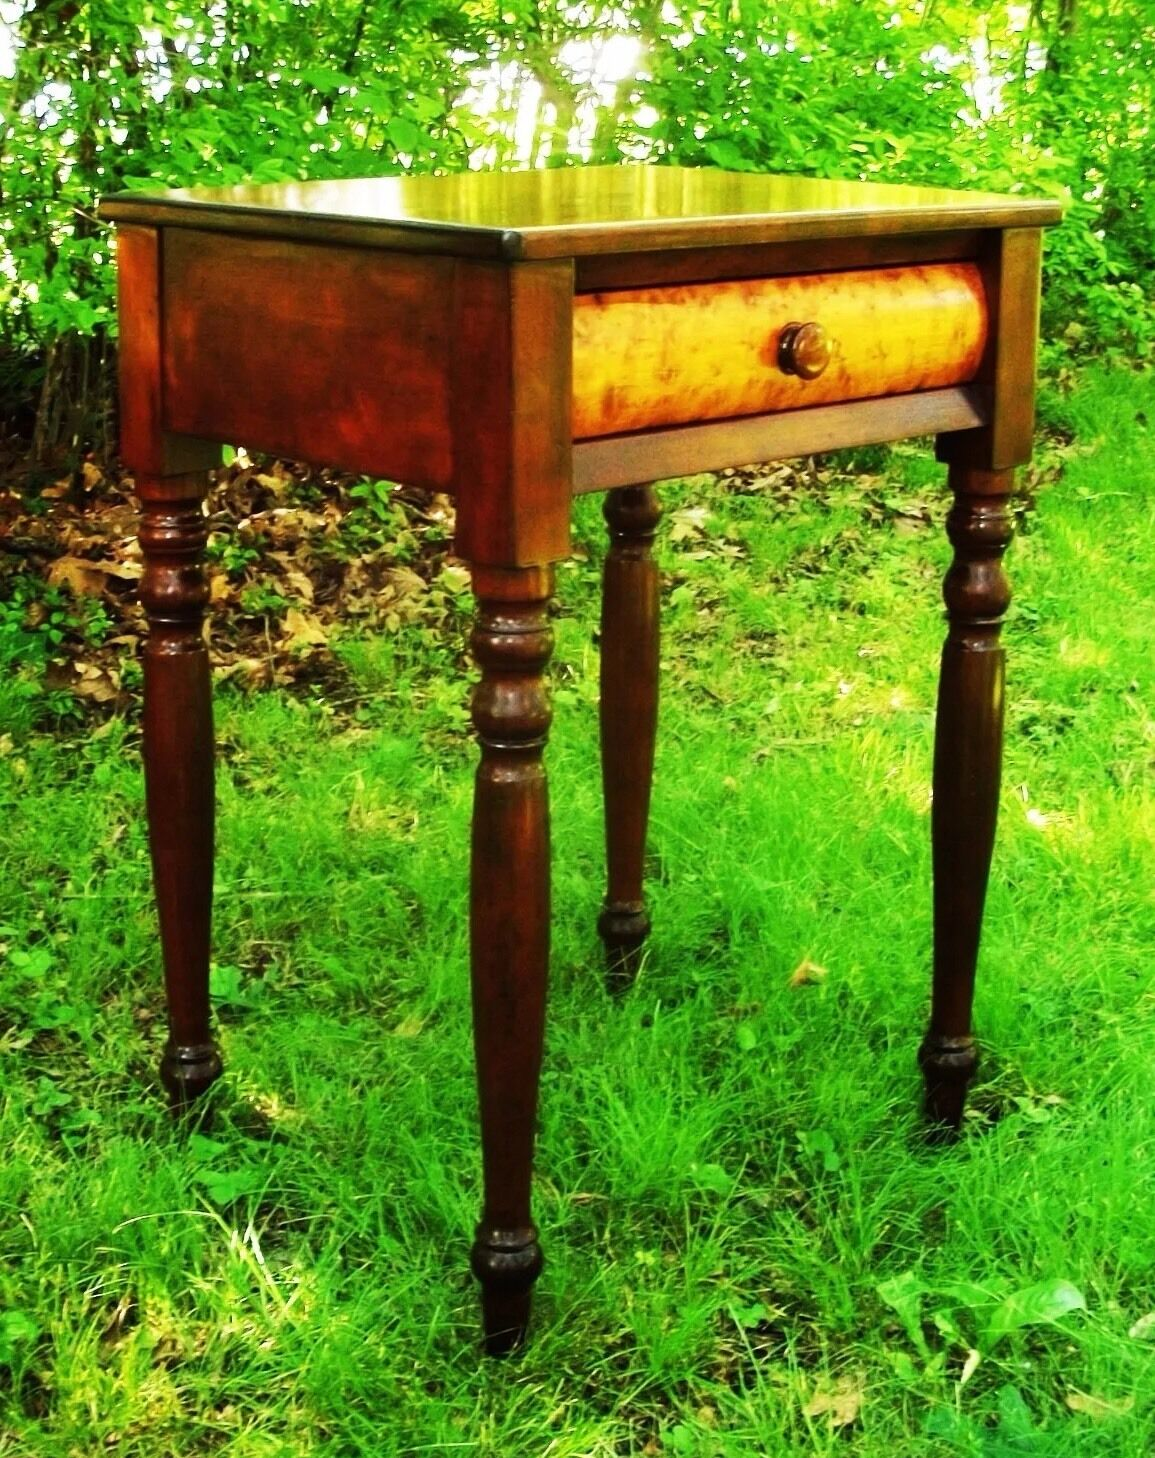 Cherry & Birdseye Sheraton Federal Furniture Antique Nightstand Side Table  1795 - CHERRY & BIRDSEYE Sheraton Federal Furniture Antique Nightstand Side